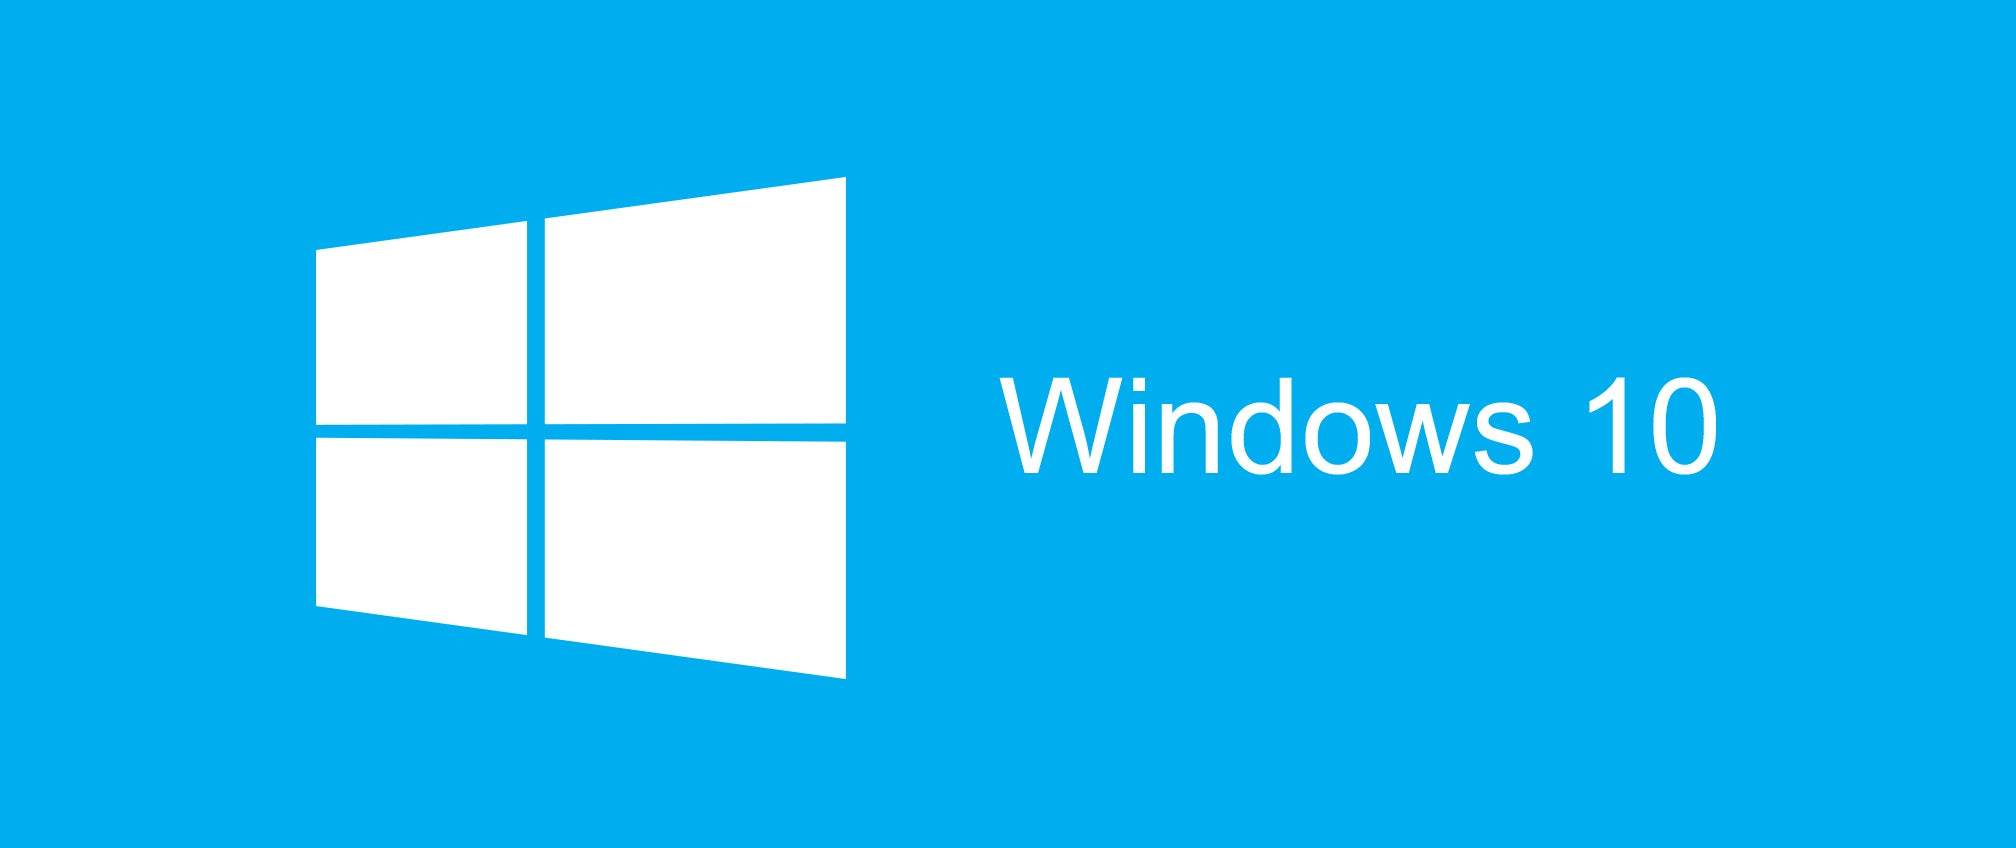 My PC Upgraded To Windows 10 Without Asking, Then Immediately Broke